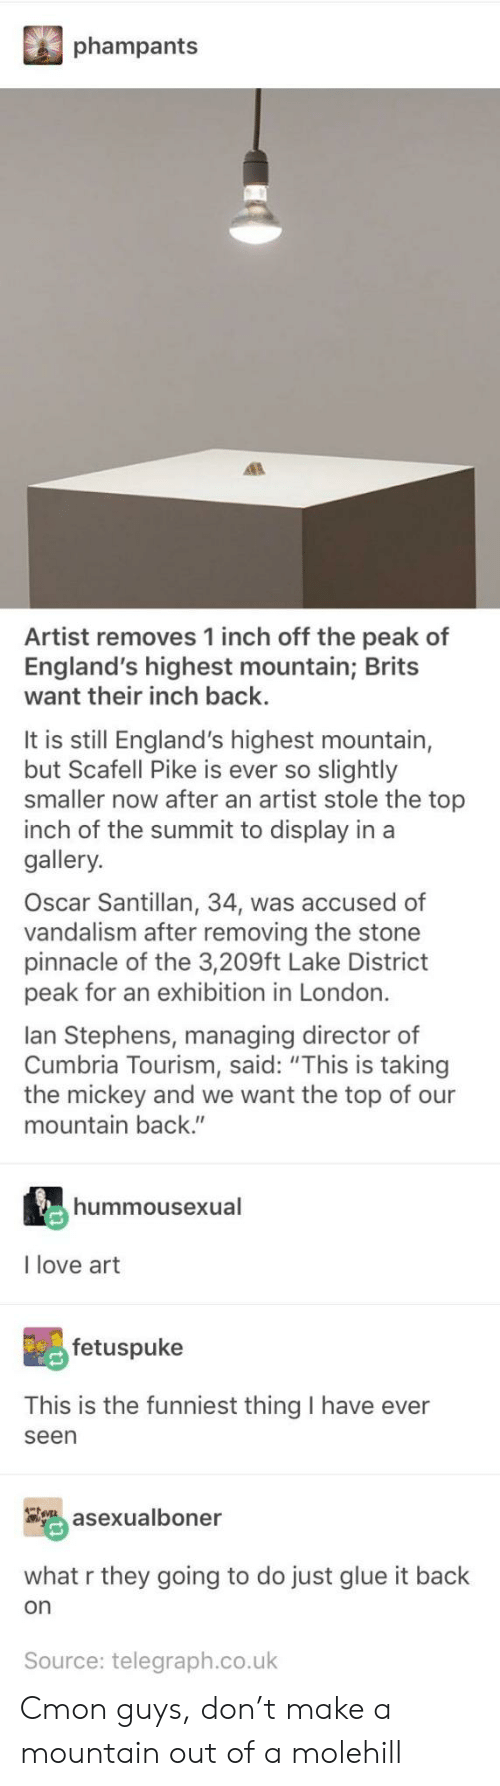 "telegraph.co.uk: phampants  Artist removes 1 inch off the peak of  England's highest mountain; Brits  want their inch back.  It is still England's highest mountain,  but Scafell Pike is ever so slightly  smaller now after an artist stole the top  inch of the summit to display in a  gallery.  Oscar Santillan, 34, was accused of  vandalism after removing the stone  pinnacle of the 3,209ft Lake District  peak for an exhibition in London.  lan Stephens, managing director of  Cumbria Tourism, said: ""This is taking  the mickey and we want the top of our  mountain back.""  hummousexual  I love art  fetuspuke  This is the funniest thing I have ever  seen  asexualboner  what r they going to do just glue it back  on  Source: telegraph.co.uk Cmon guys, don't make a mountain out of a molehill"